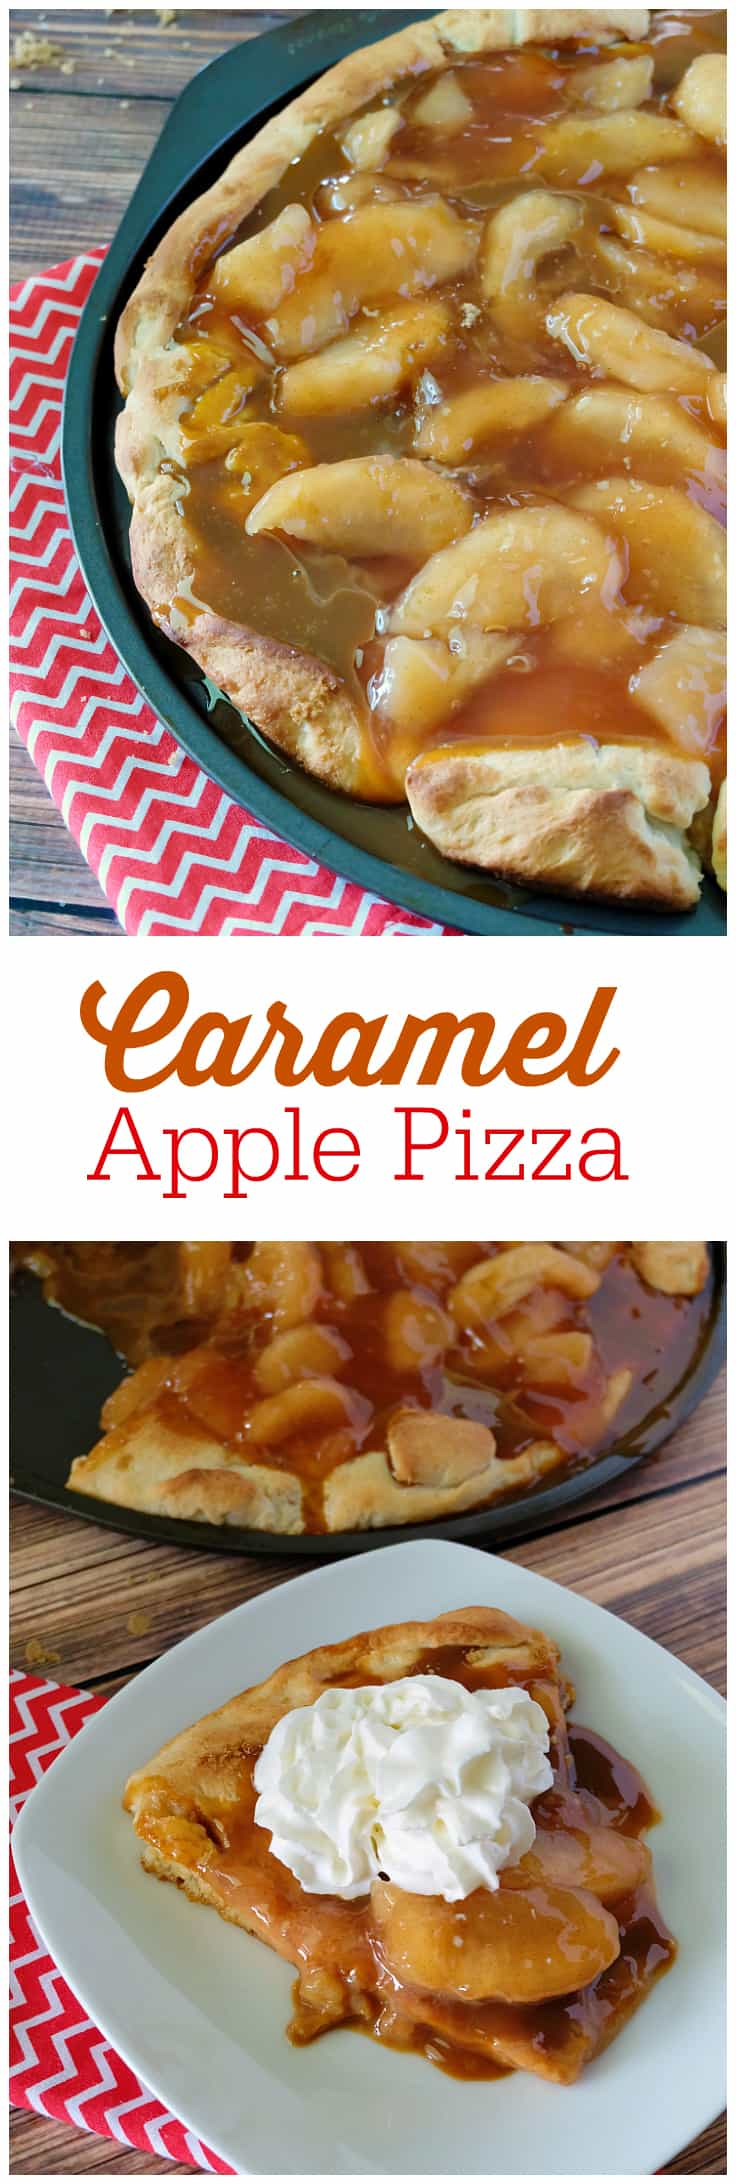 Caramel Apple Pizza - Simply Stacie